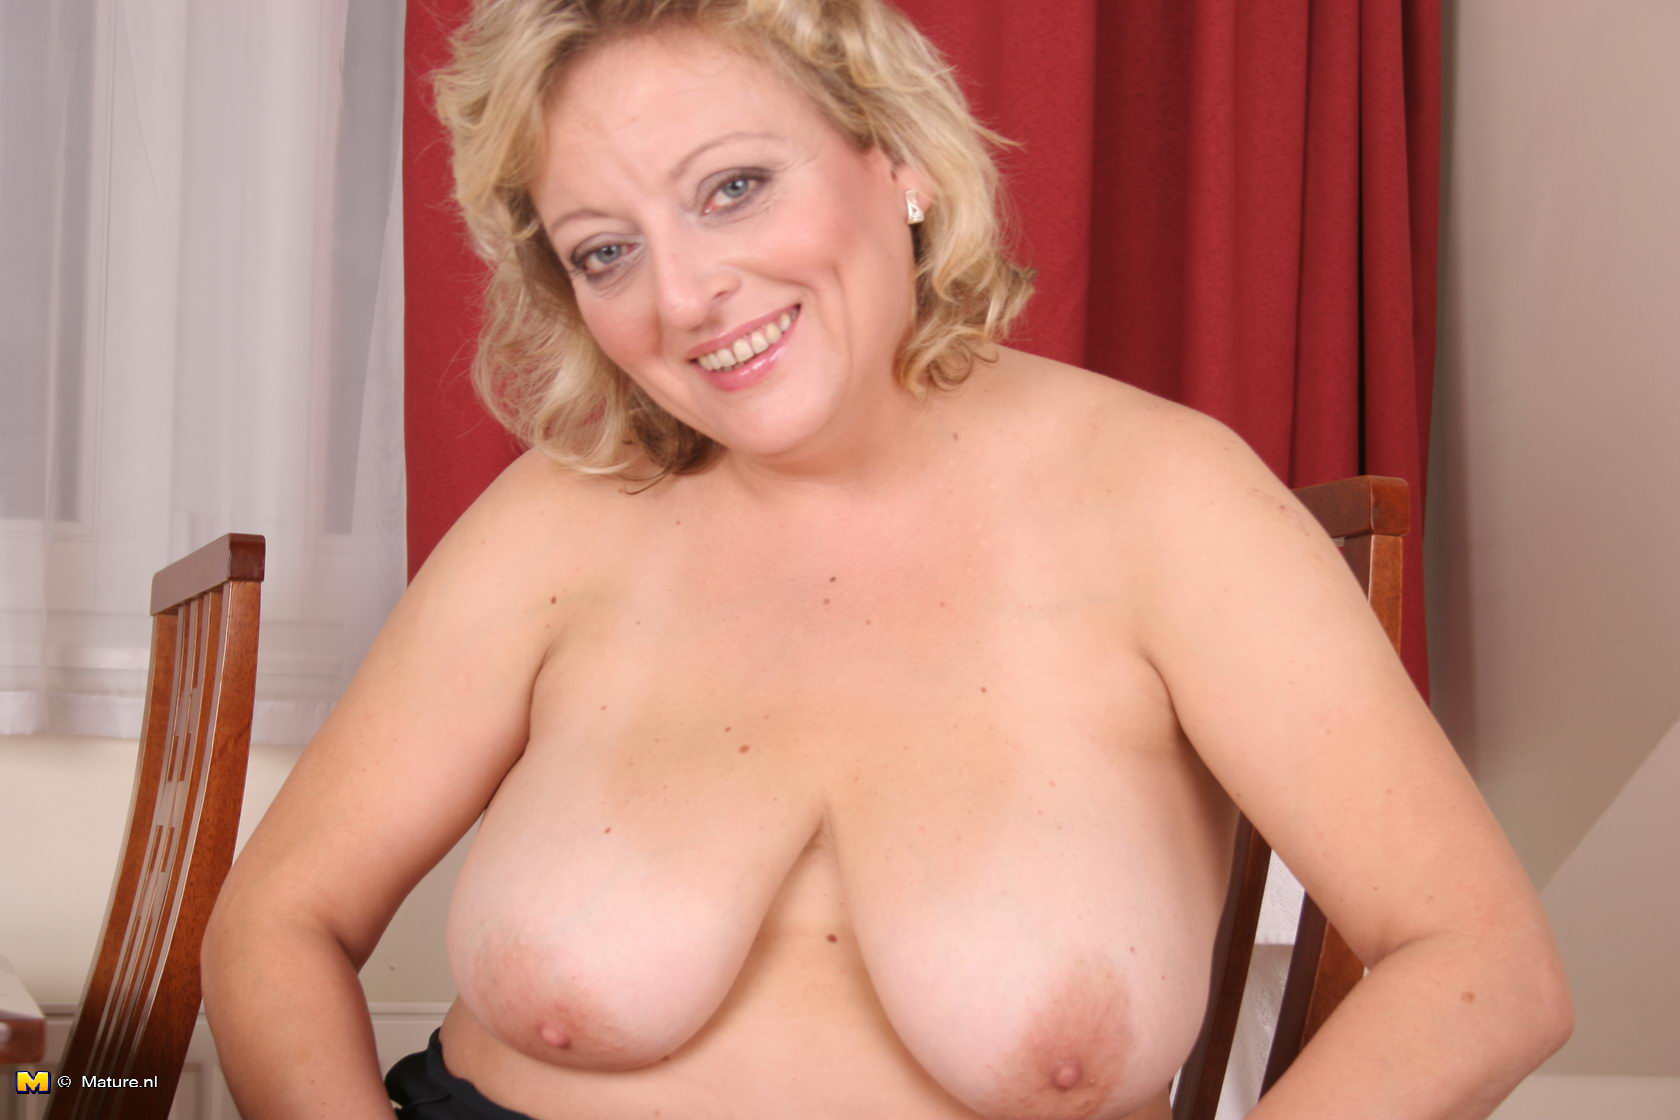 Alex Matures - Free Mature / Granny / MILF / Housewifes